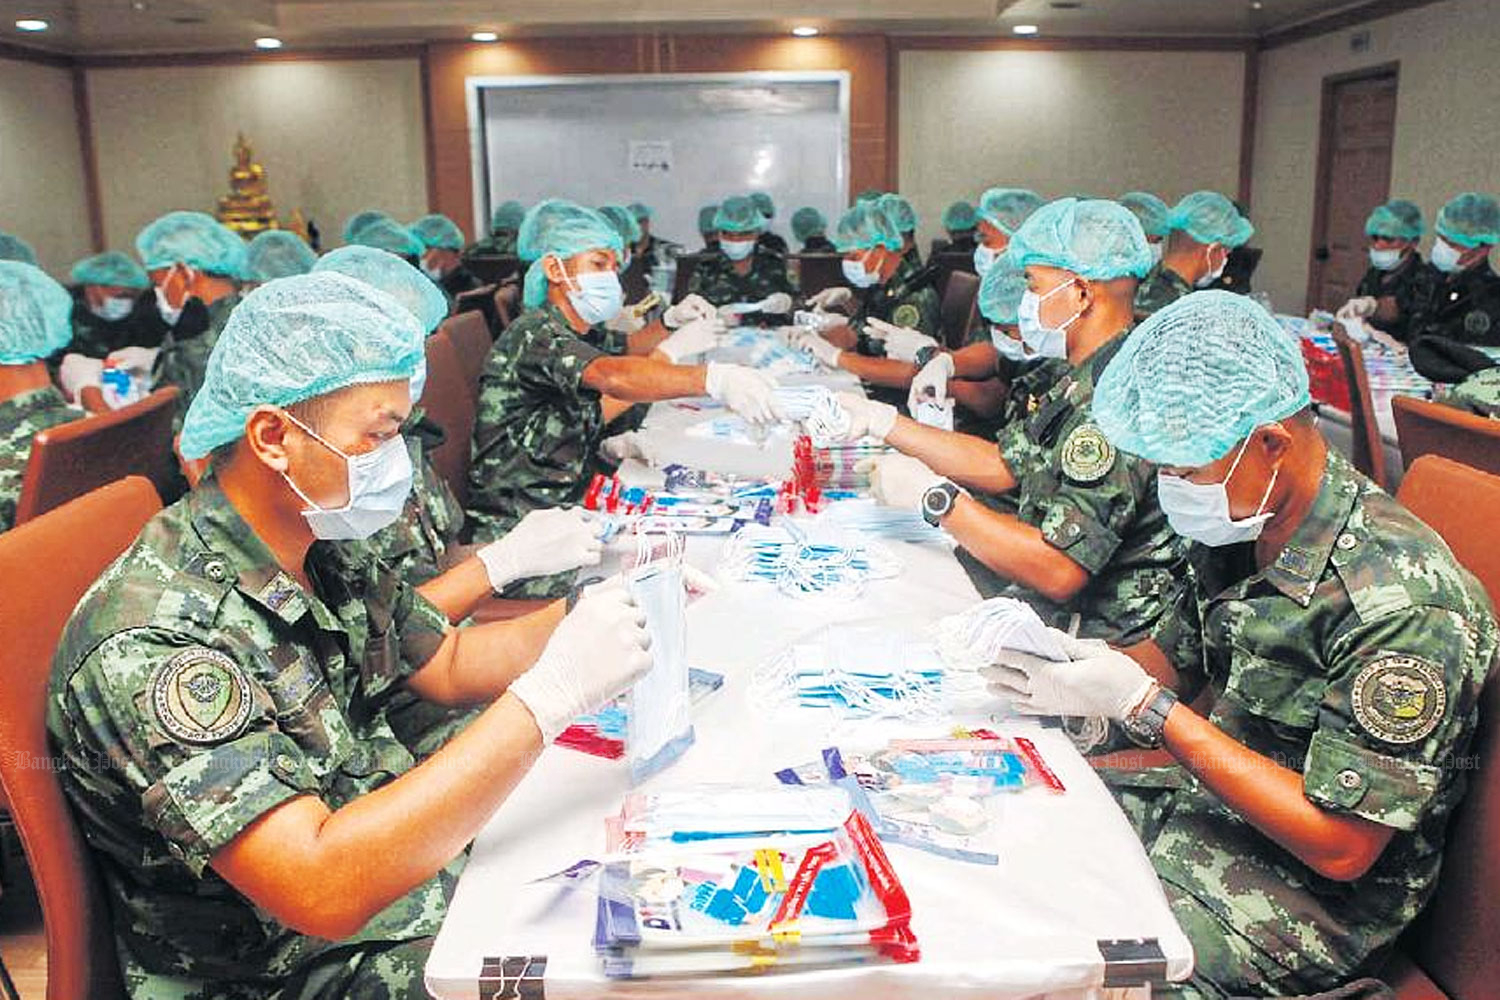 Soldiers pack surgical masks for distribution to hospitals courtrywide as part of a special mission at the Internal Trade Department, which is struggling to deal with a shortage. (Photo by Nutthawat Wicheanbut)